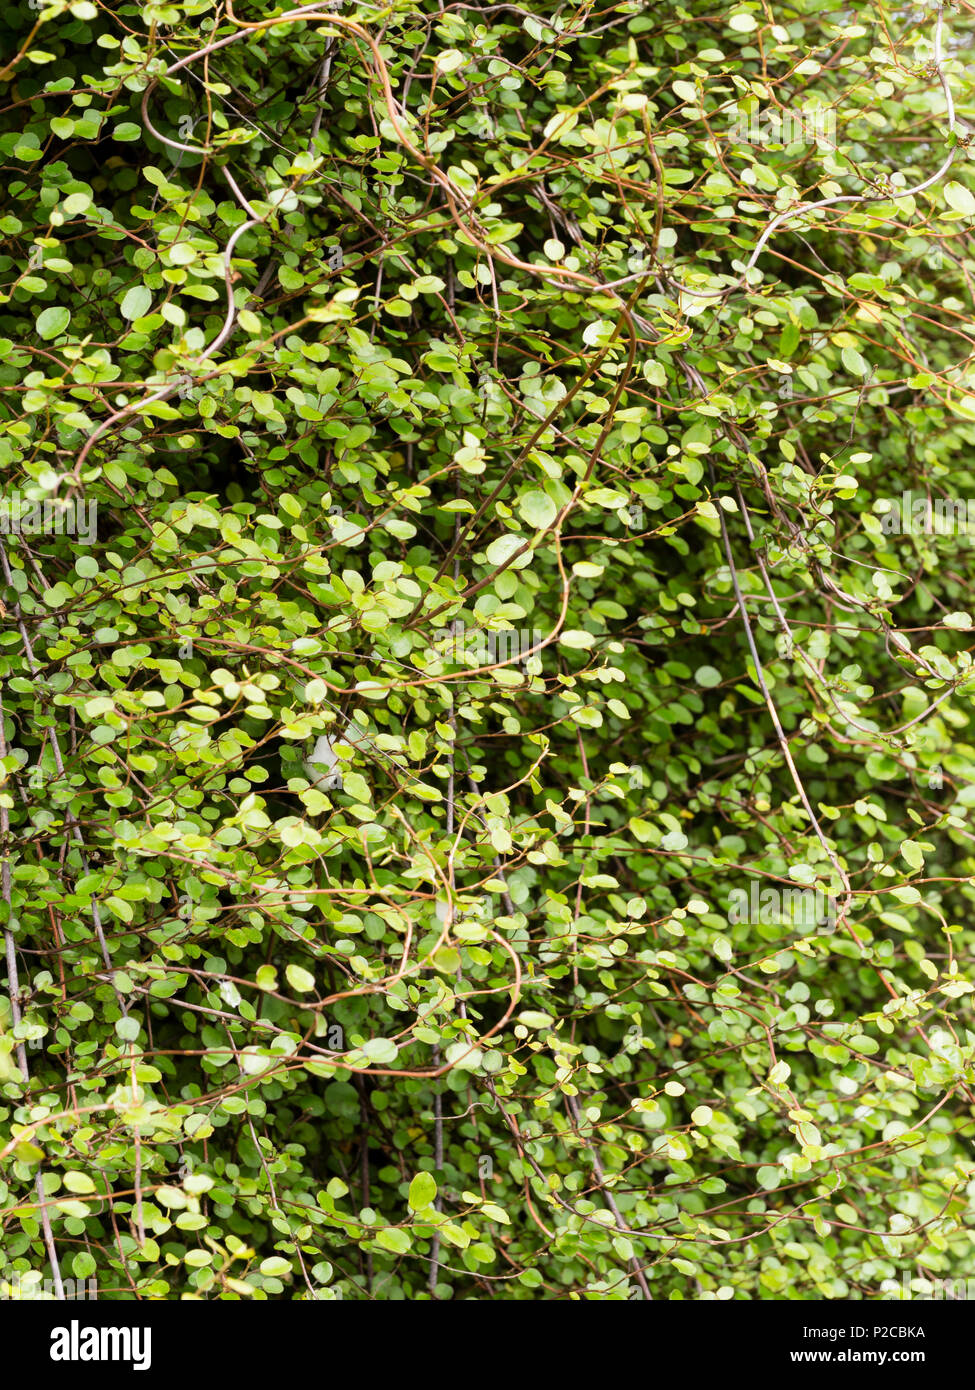 Small round leaves of the dense scrambling New Zealand Pohoehue shrub, Muehlenbeckia complexa - Stock Image